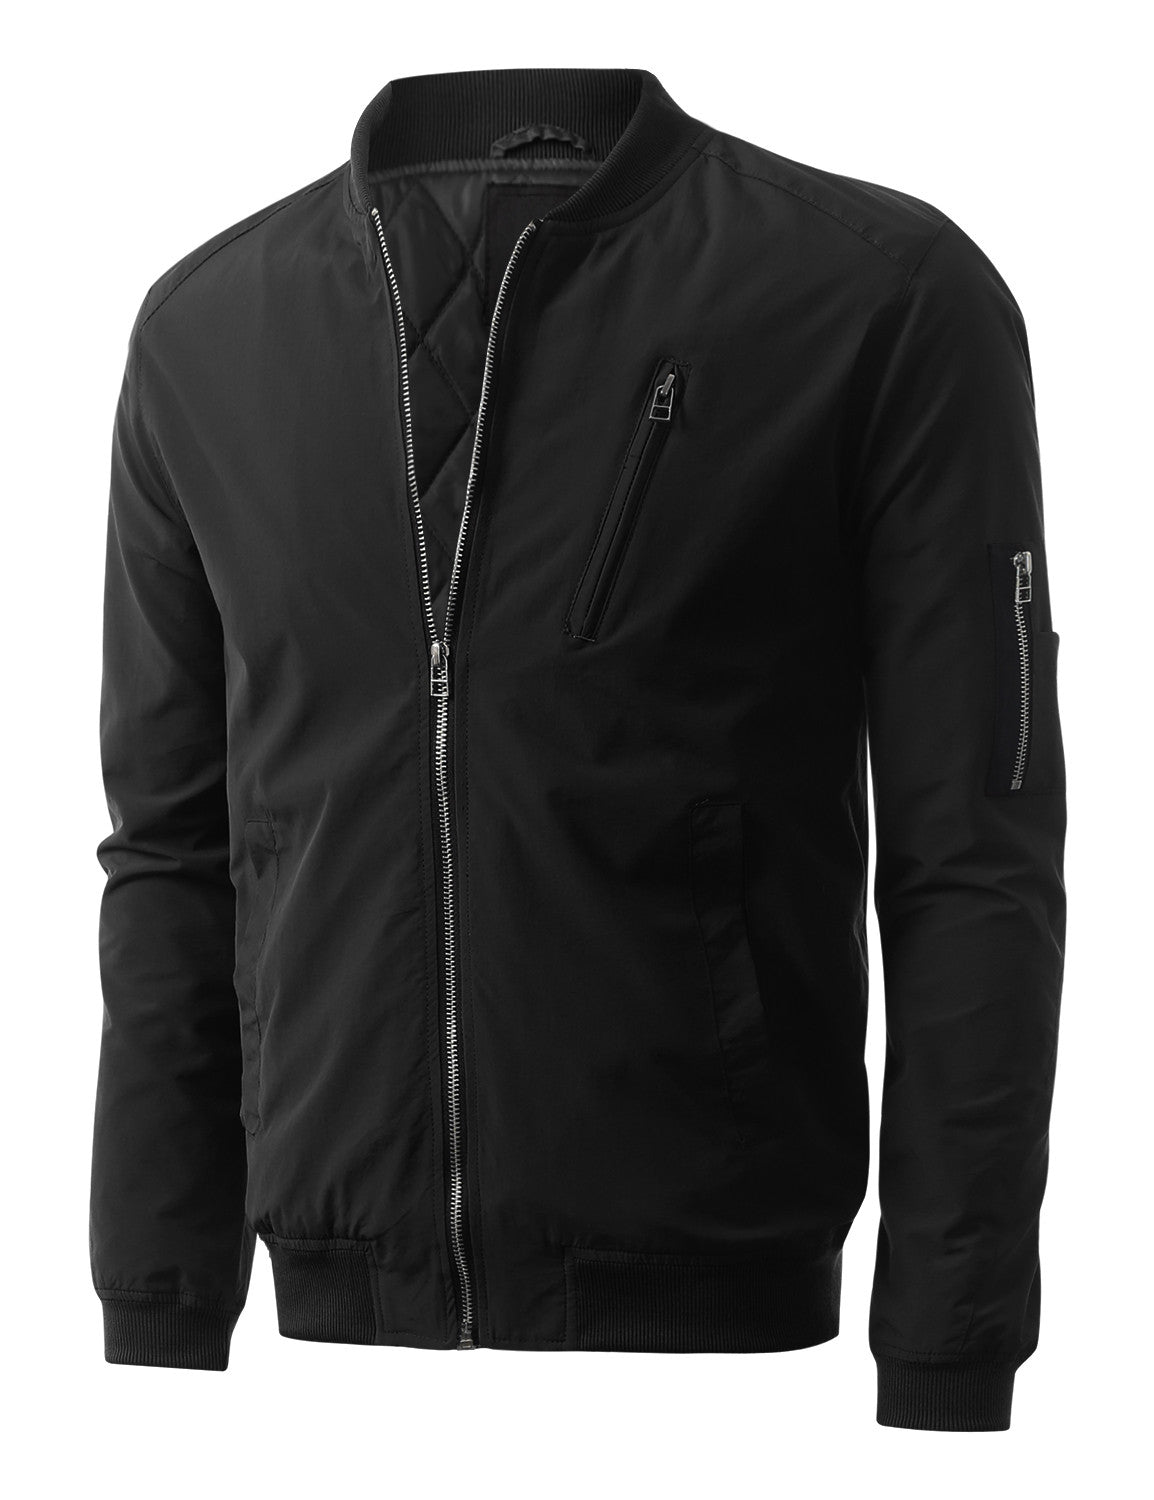 BLACK Padded Woven Zip Up Bomber Jacket - URBANCREWS